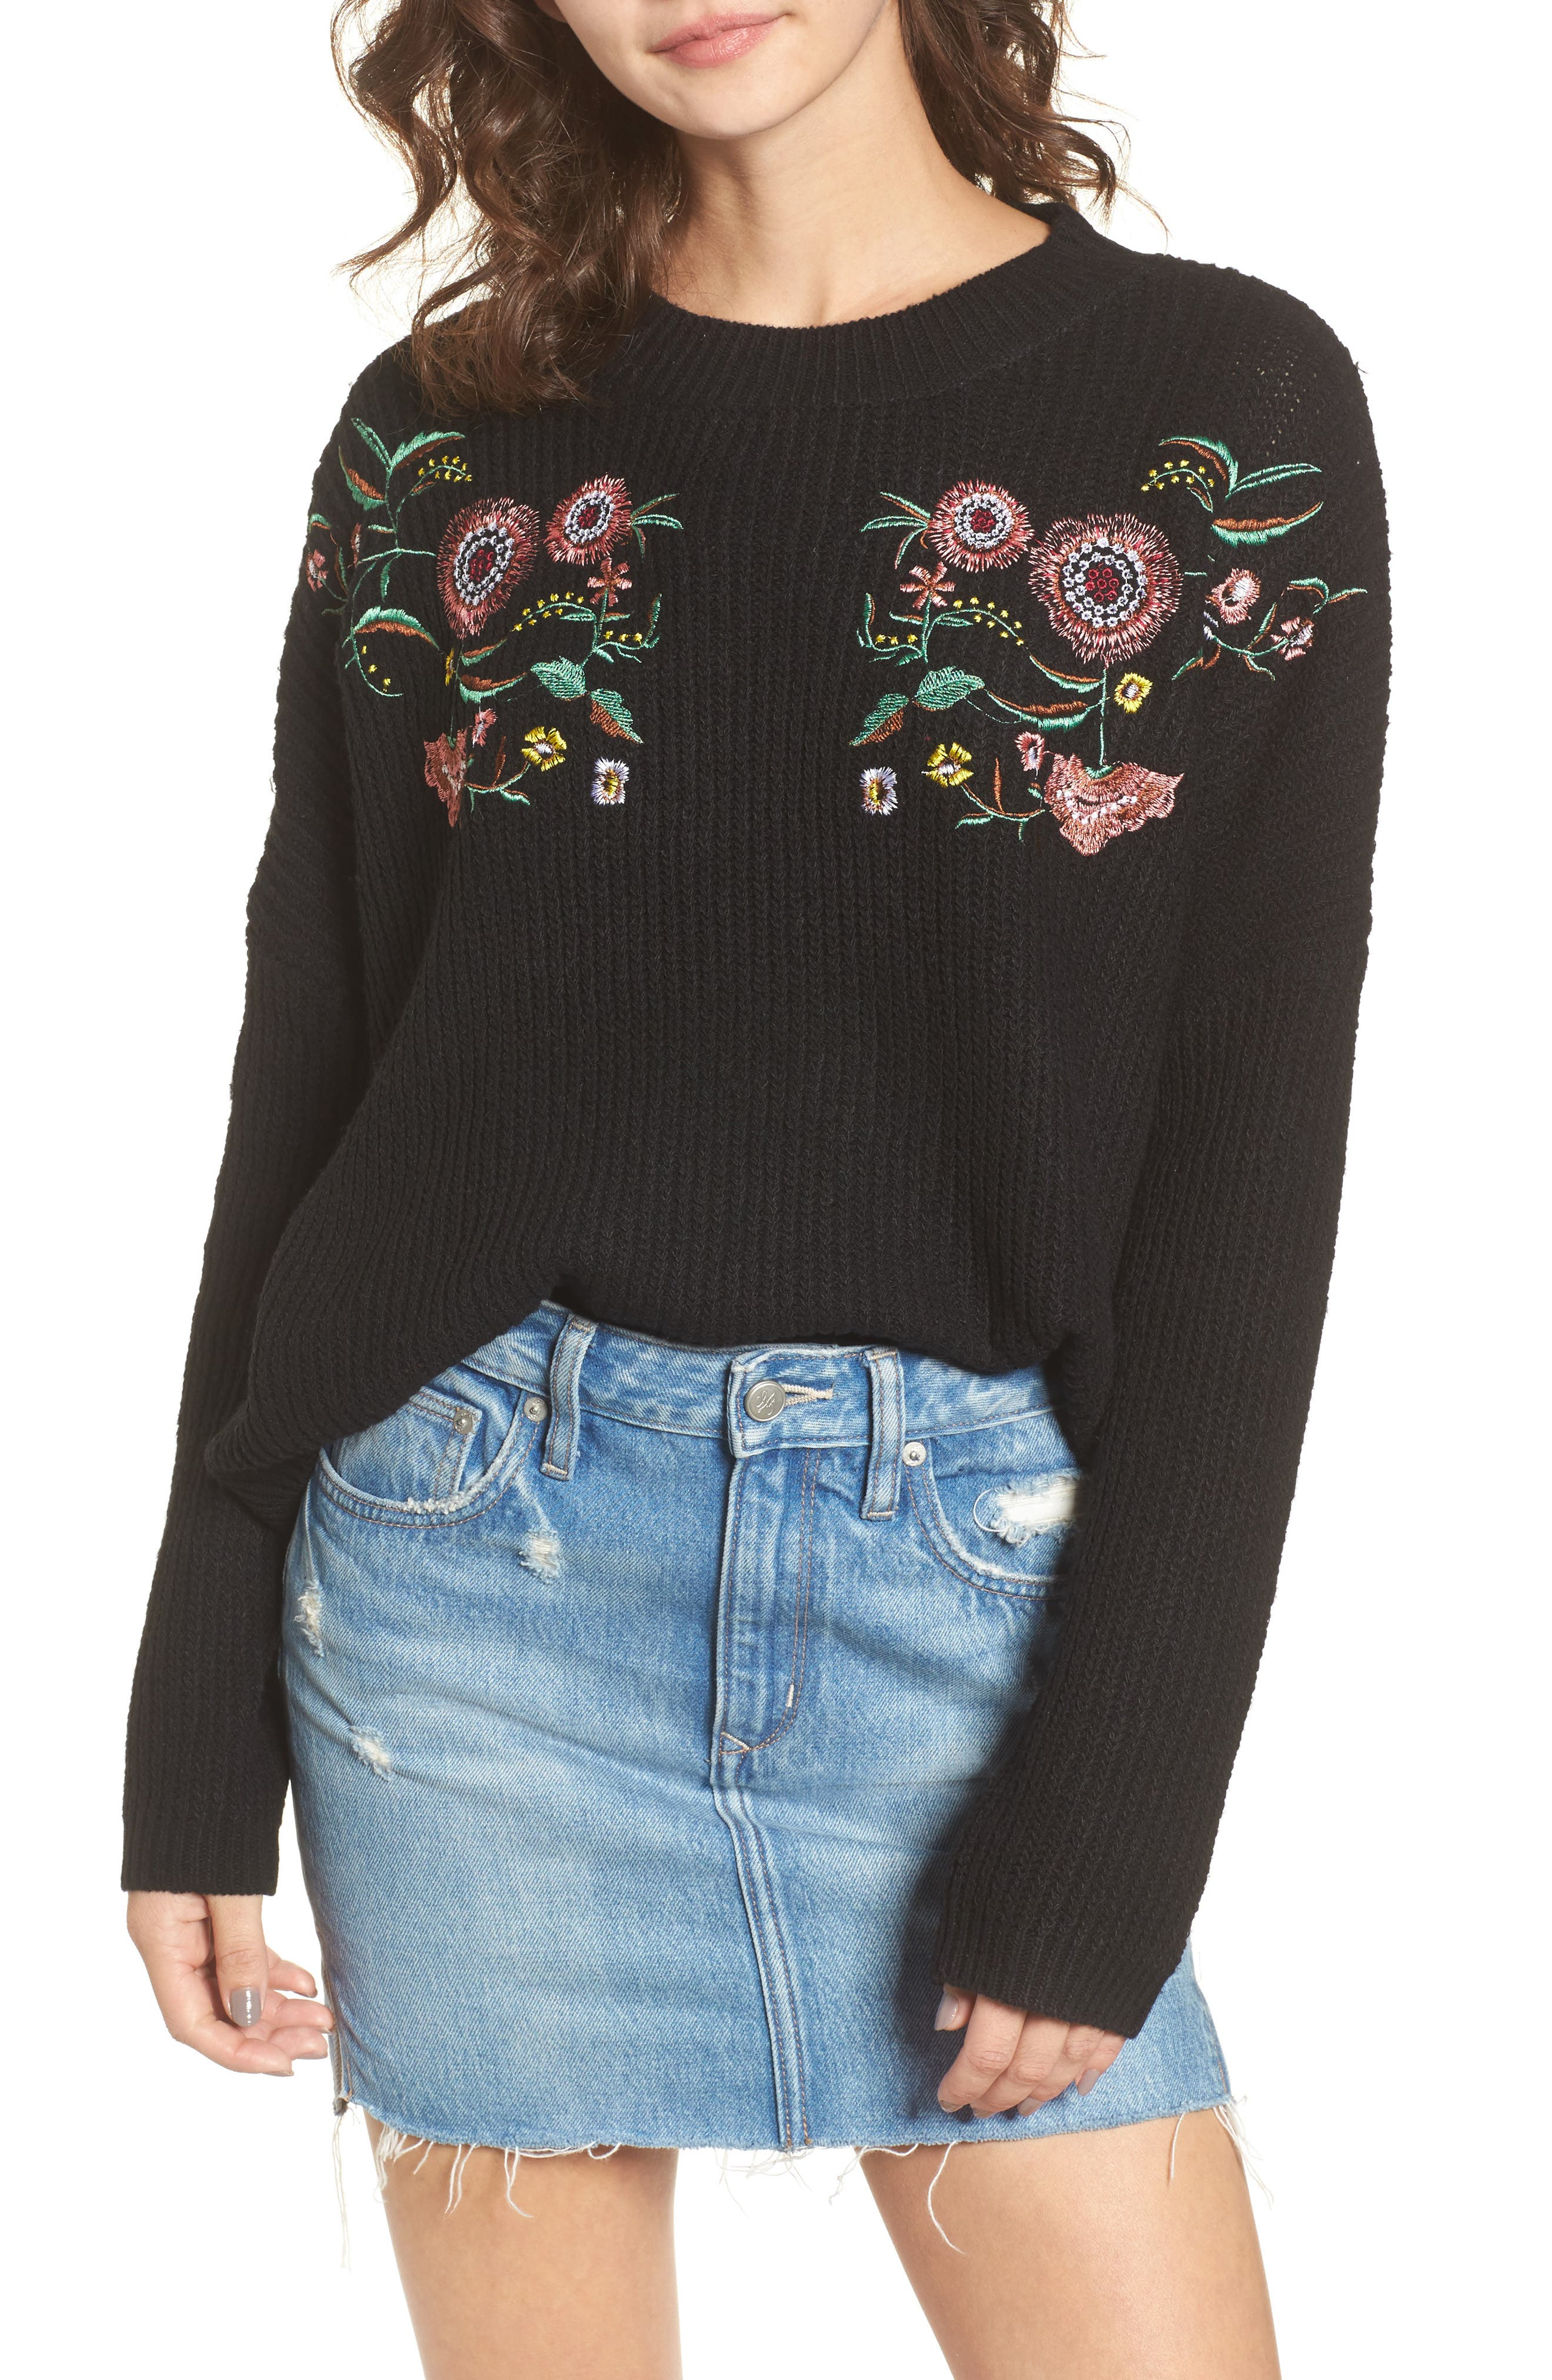 Alternate Image 1 Selected - Woven Heart Embroidered Floral Sweater